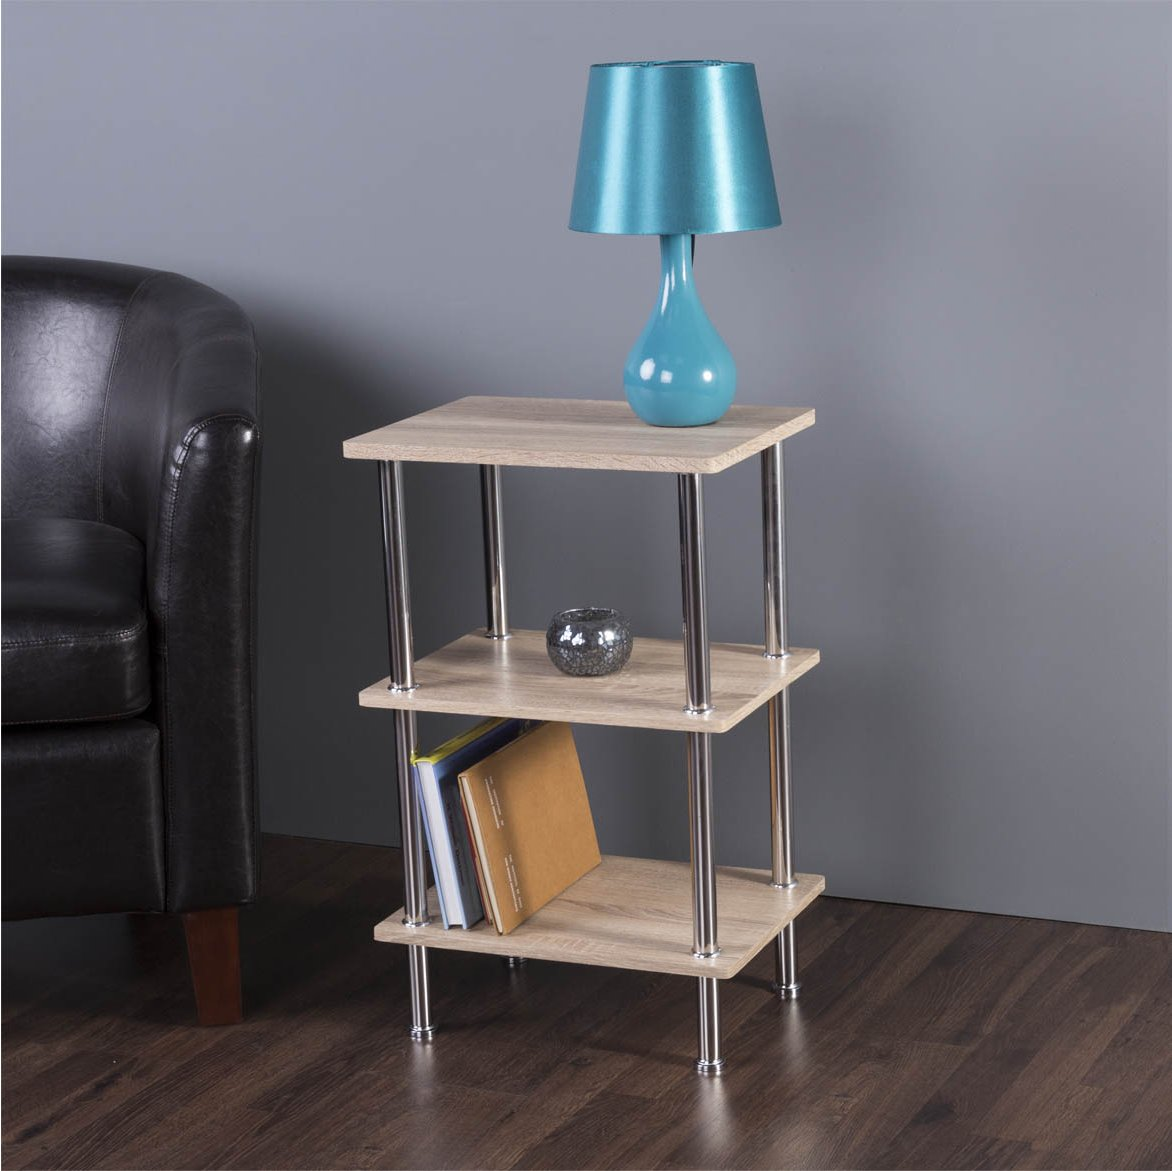 Avf s33ow bookcases cabinets for Avf furniture